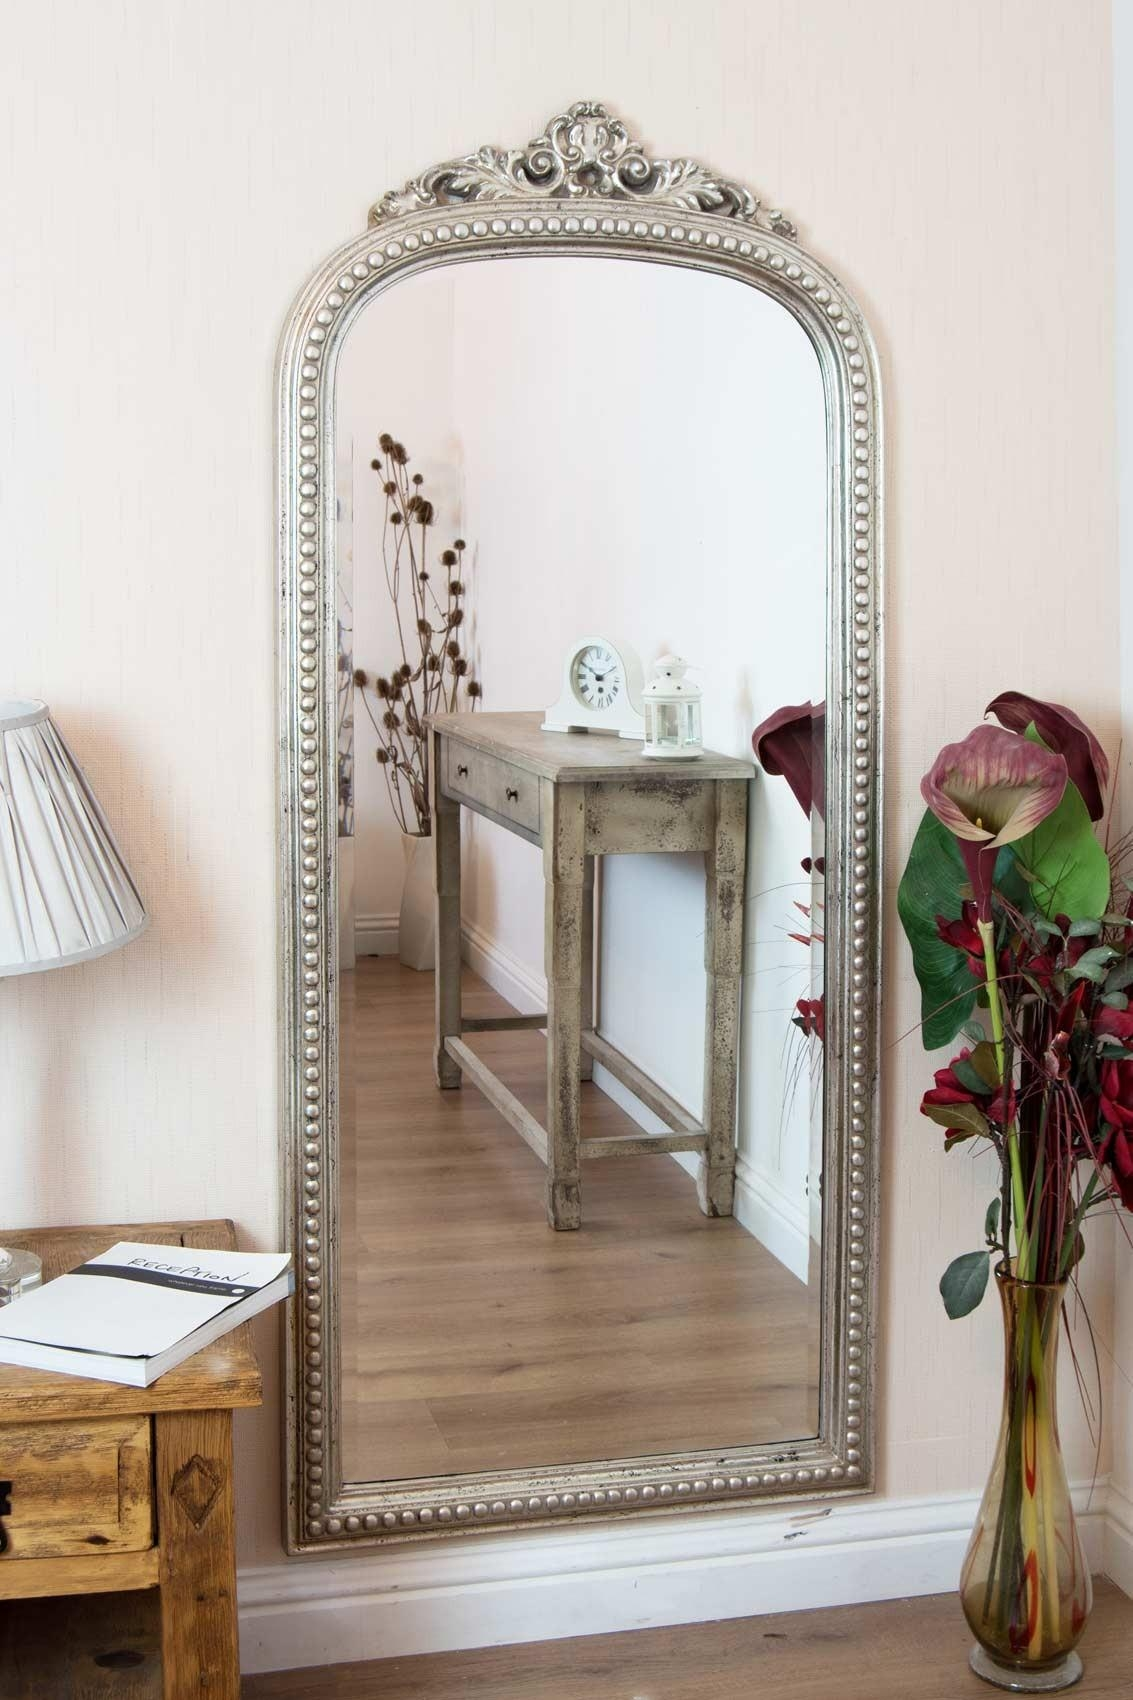 Shabby Chic Wall Mirror 88 Stunning Decor With Large Antique With Regard To Mirror Shabby Chic (Image 18 of 20)